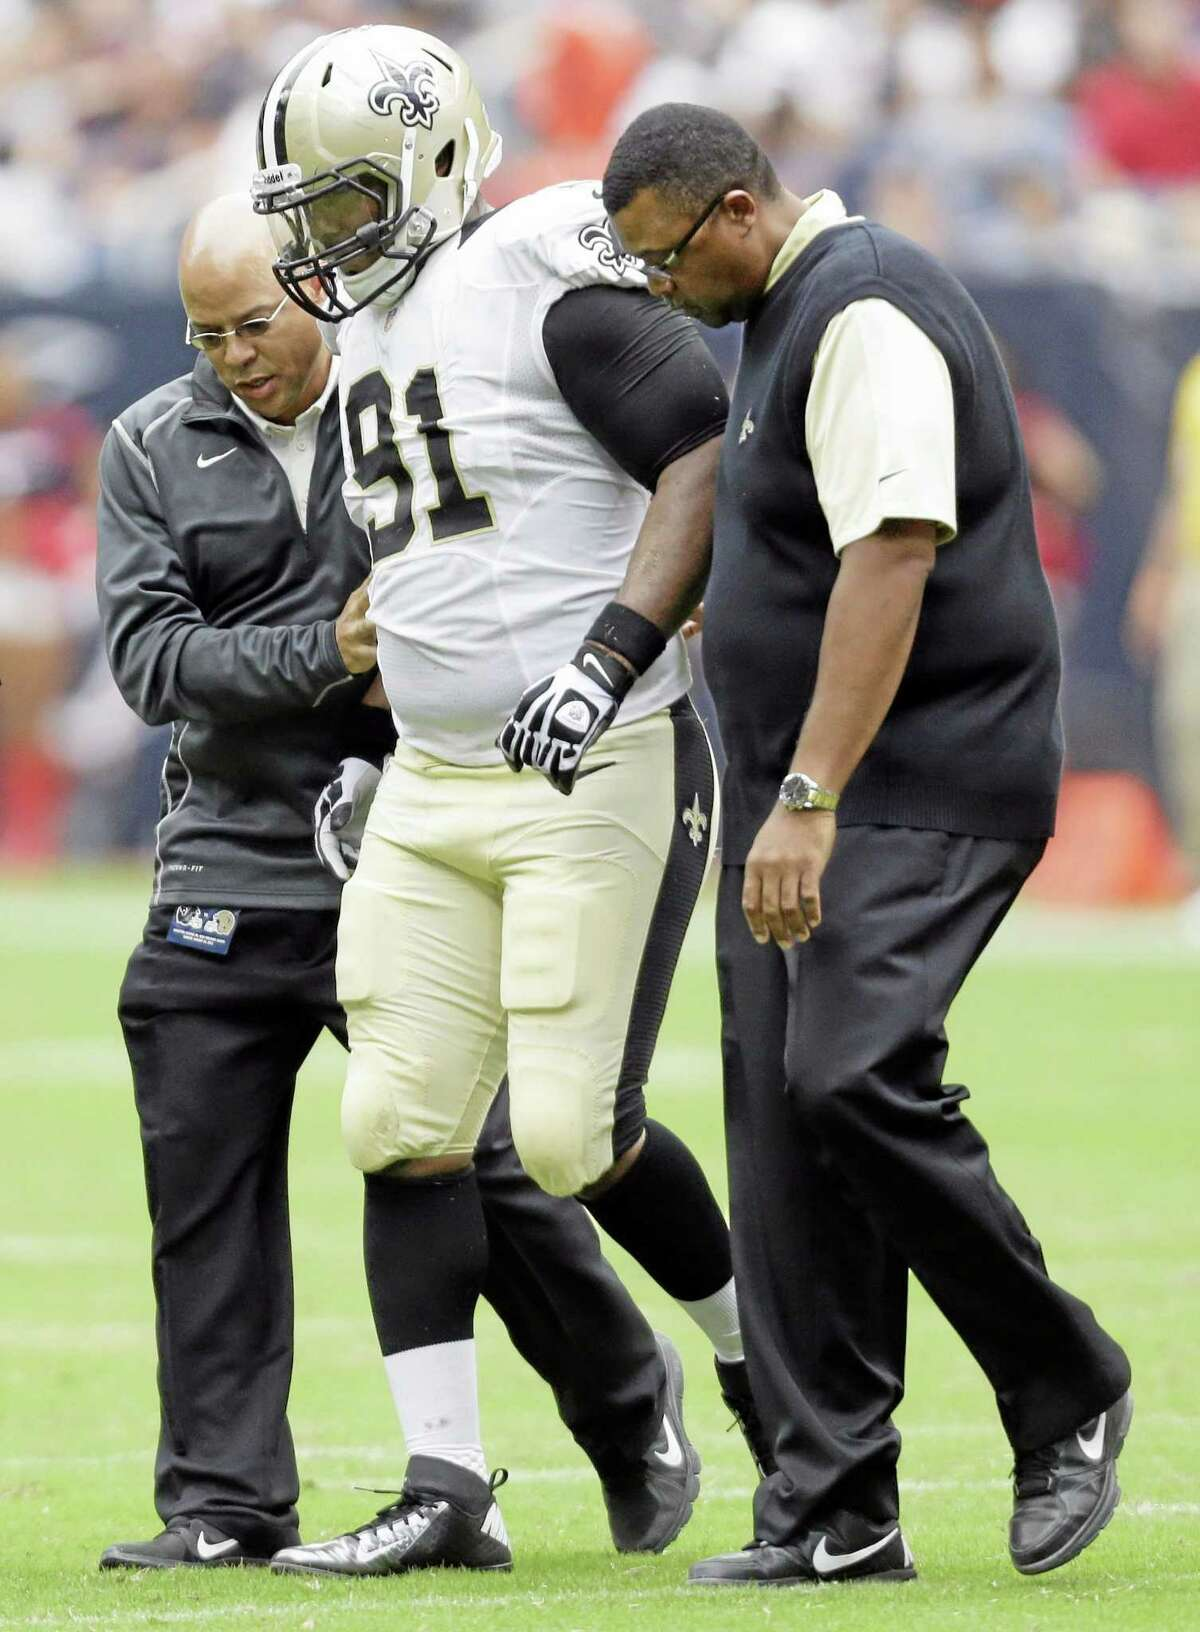 New Orleans Saints linebacker Will Smith (91) is helped off the field during the first half of a preseason NFL football game against the Houston Texans on Aug. 25, 2013, in Houston.